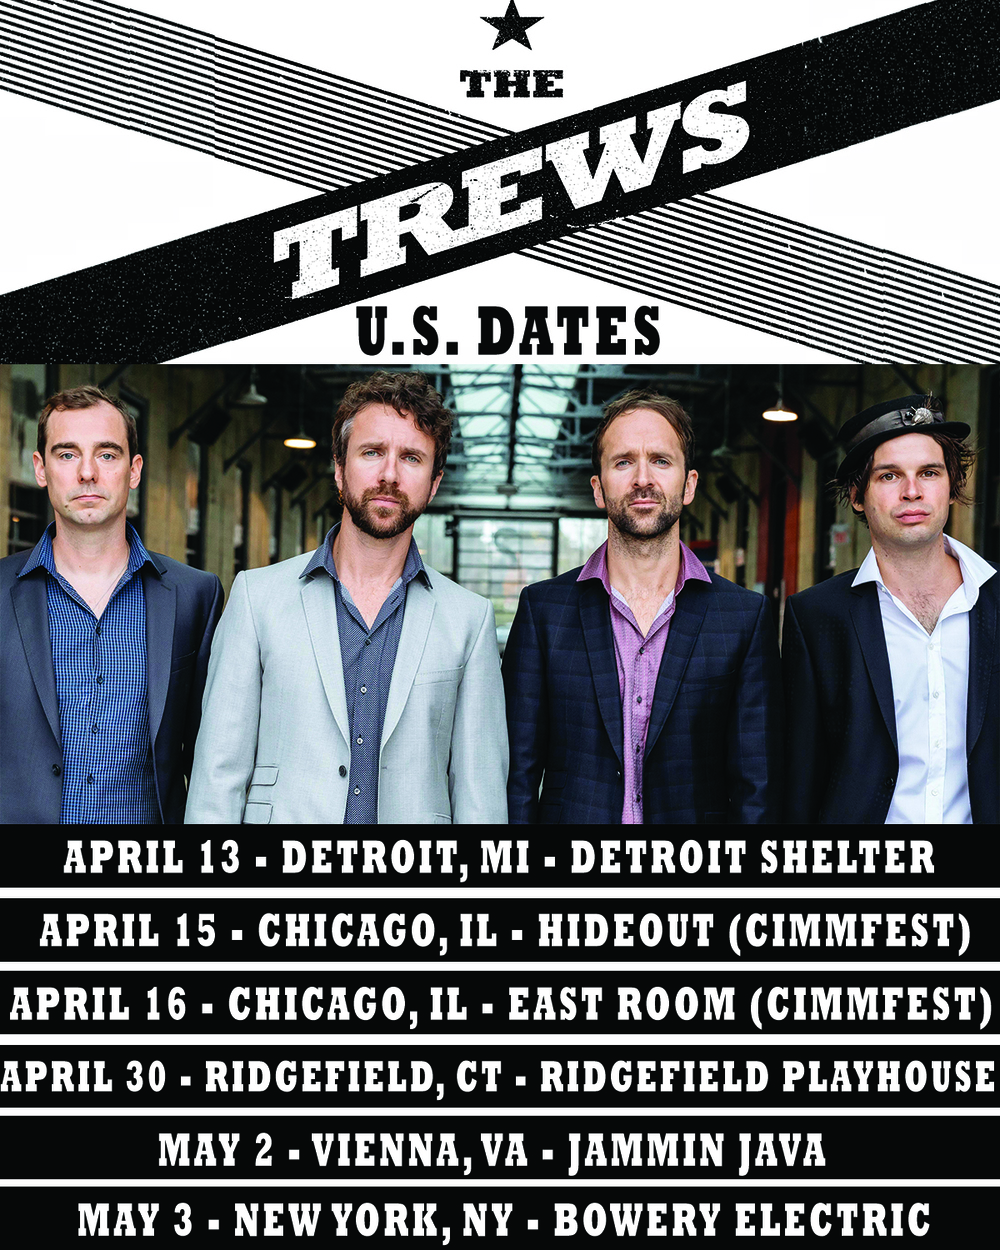 TREWS-US-Dates1-1.jpg